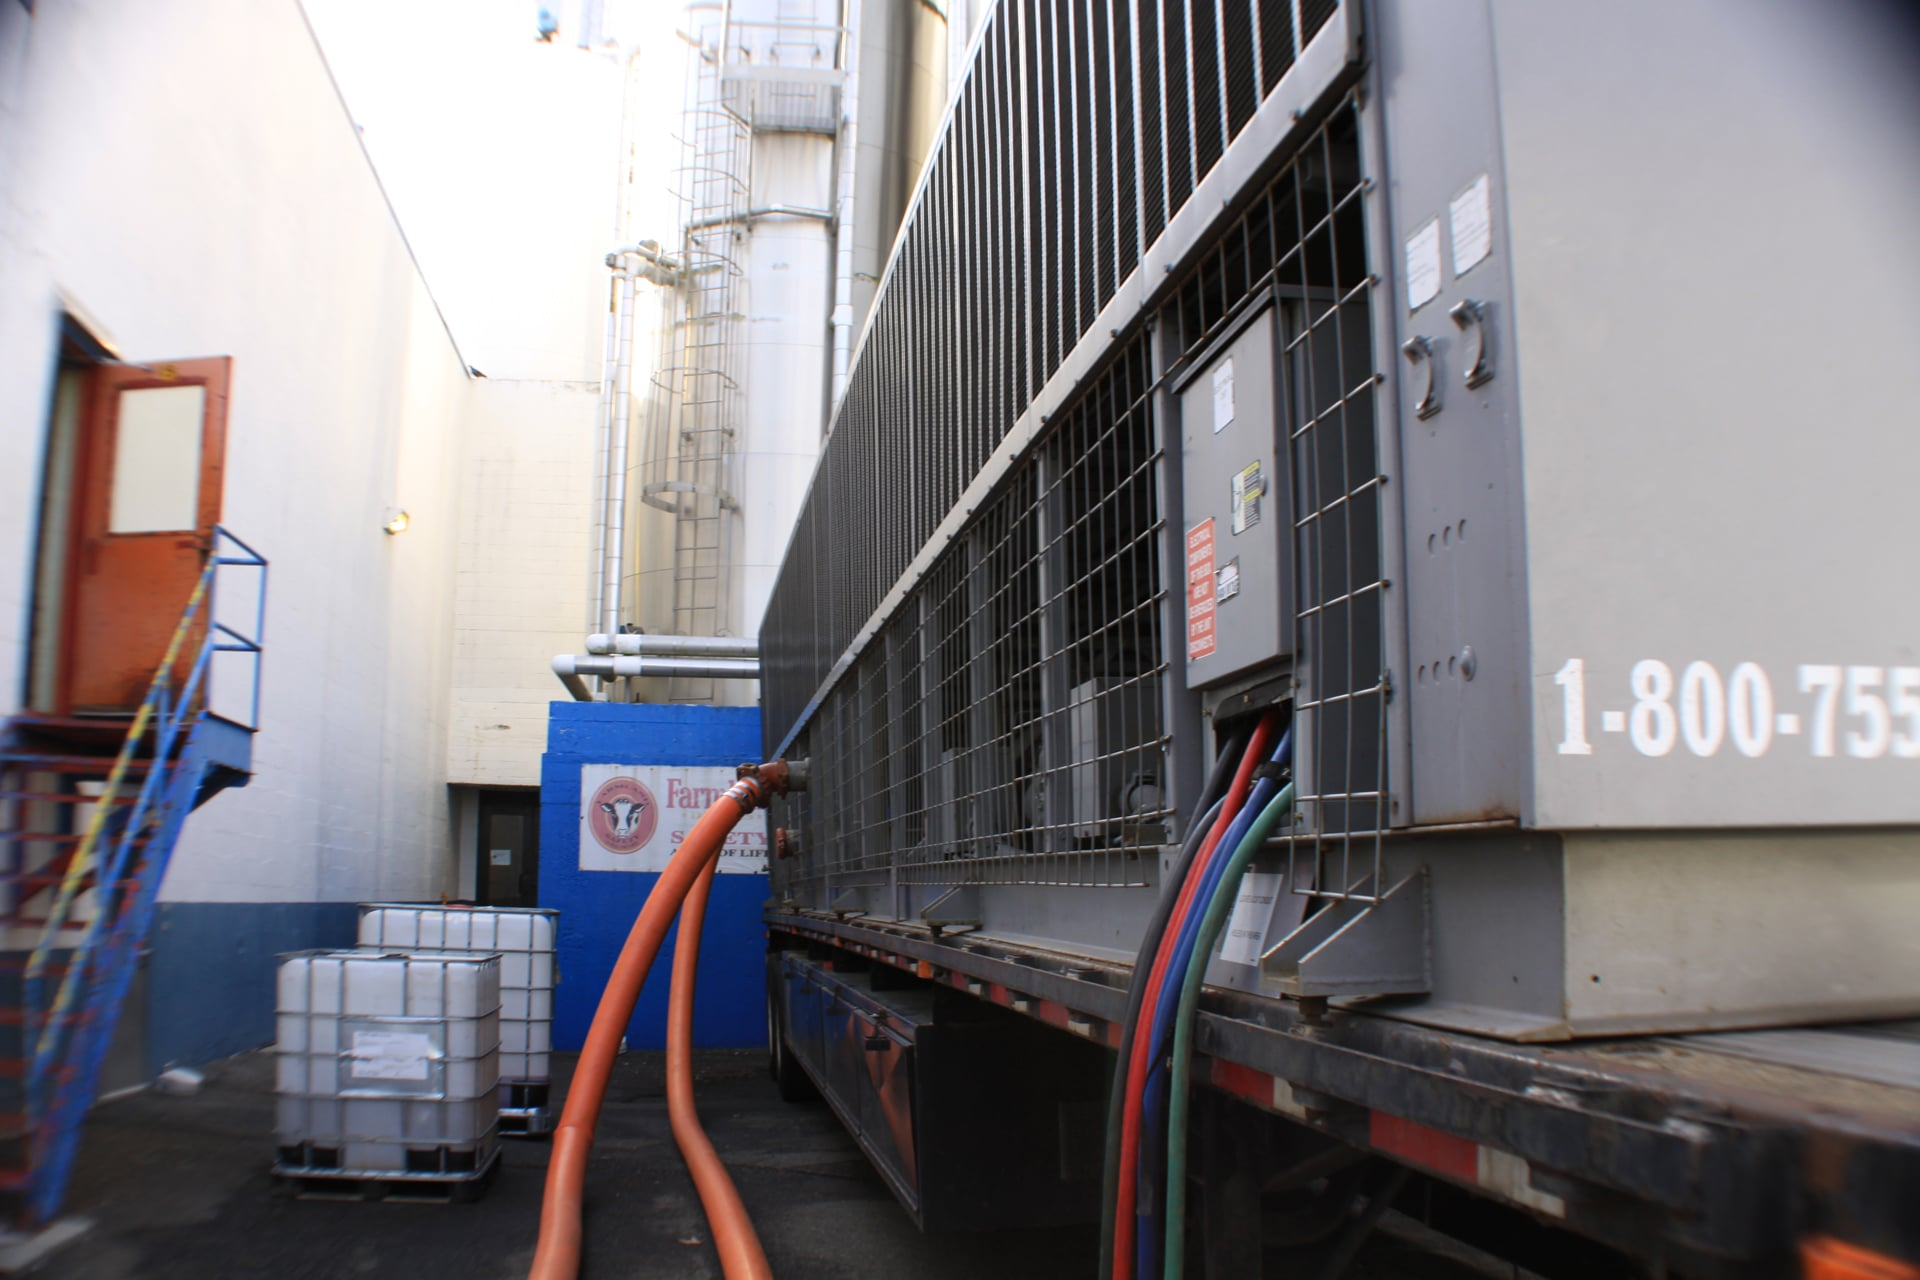 Temporary Chiller Erie County PA, Air Cooled Chiller Rental Erie County PA